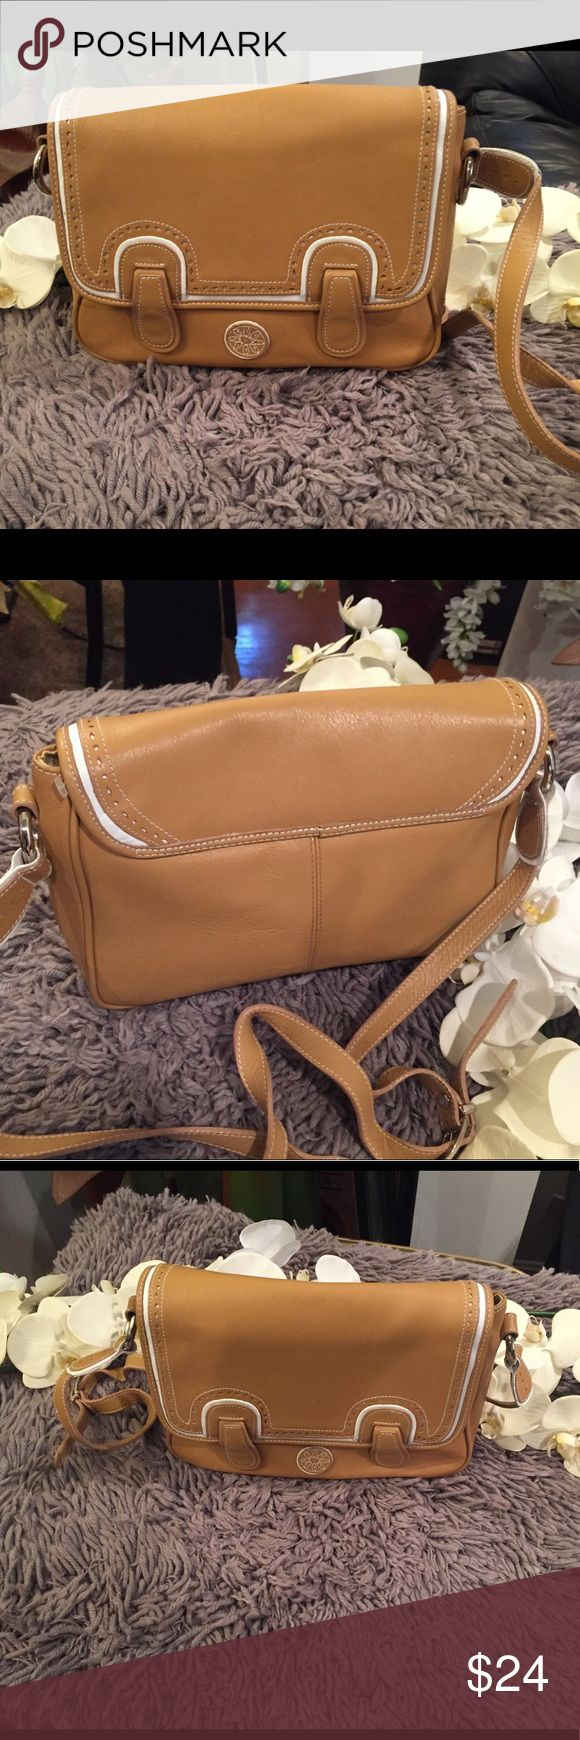 Guess faux leather sandstone strap bag Sandstone  color with white linings  Comes with strap  2 compartments  Minor stain flaws inside bag (see photos)  Preowned but still a good condition and very stylish. Faux leather Guess Bags Crossbody Bags